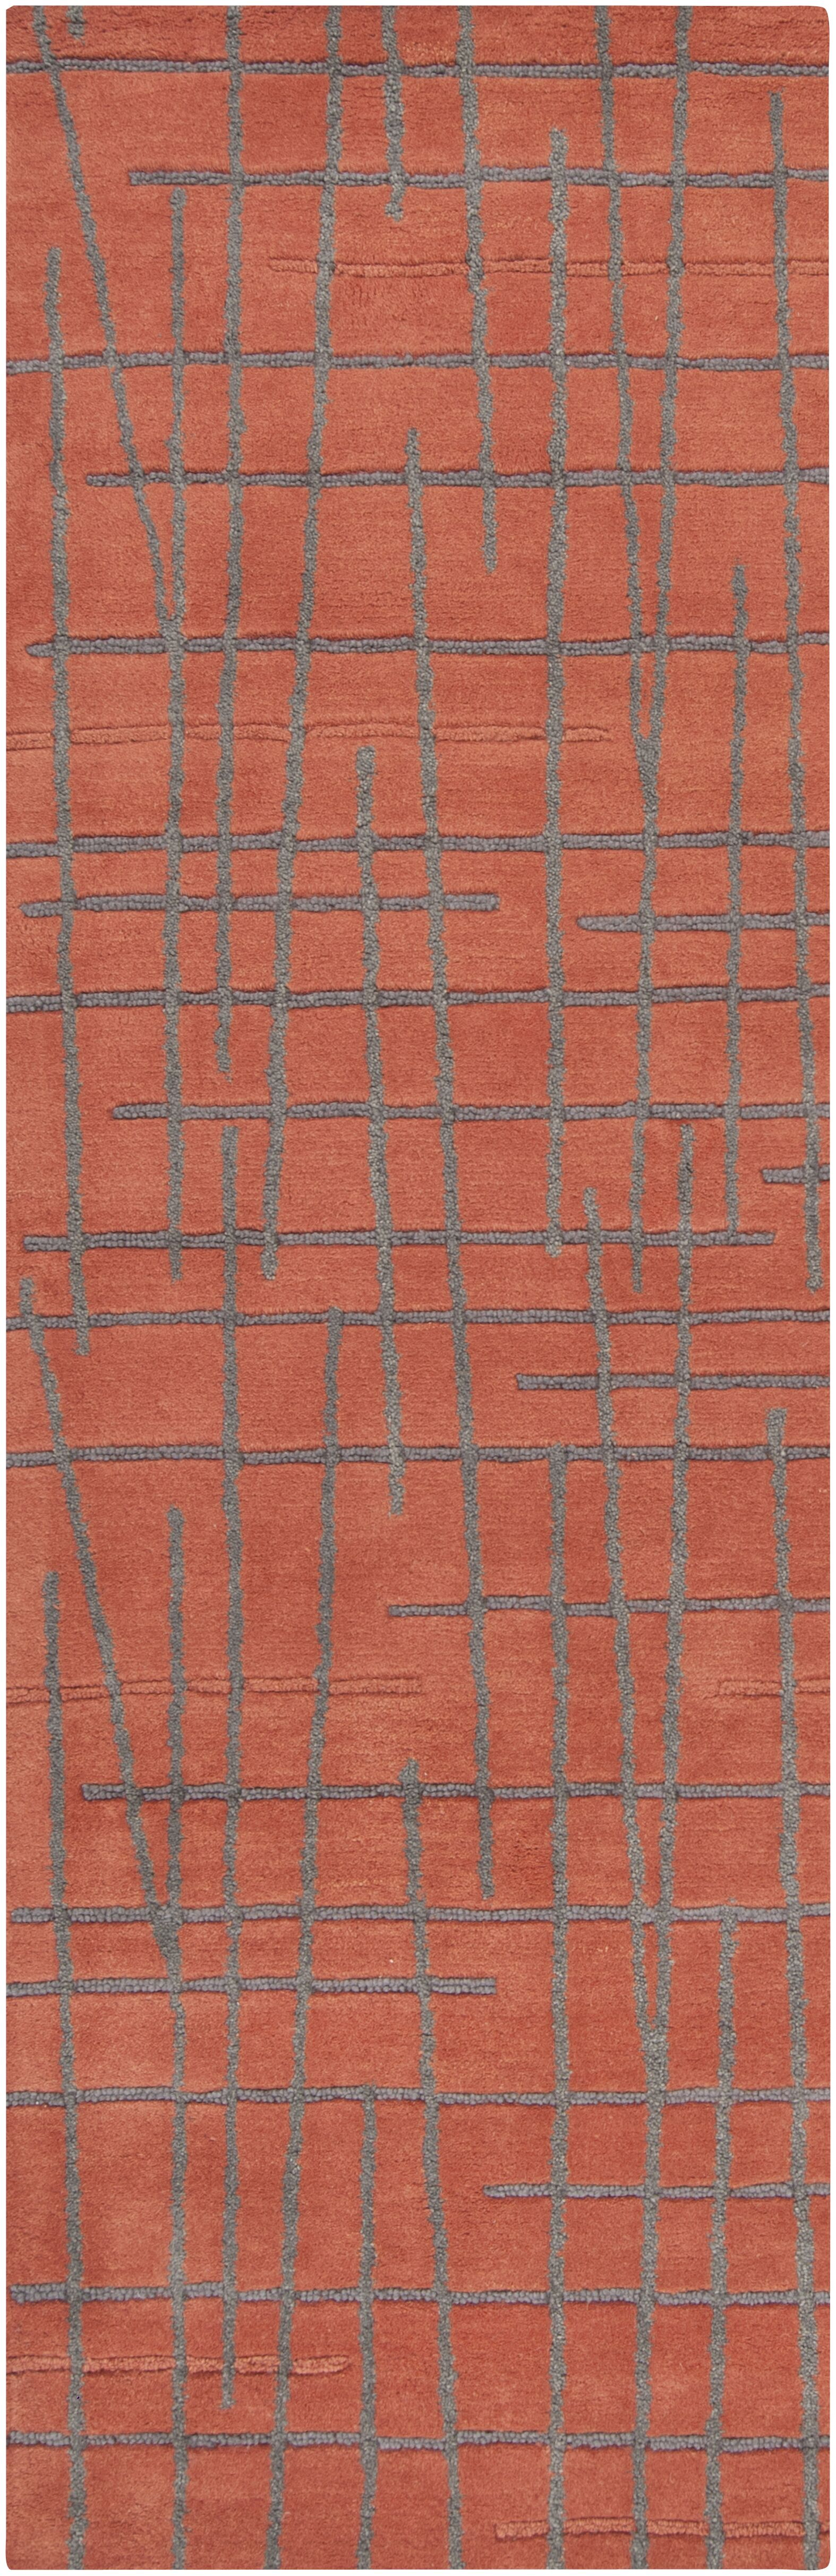 Major Red Clay Area Rug Rug Size: Rectangle 3'3